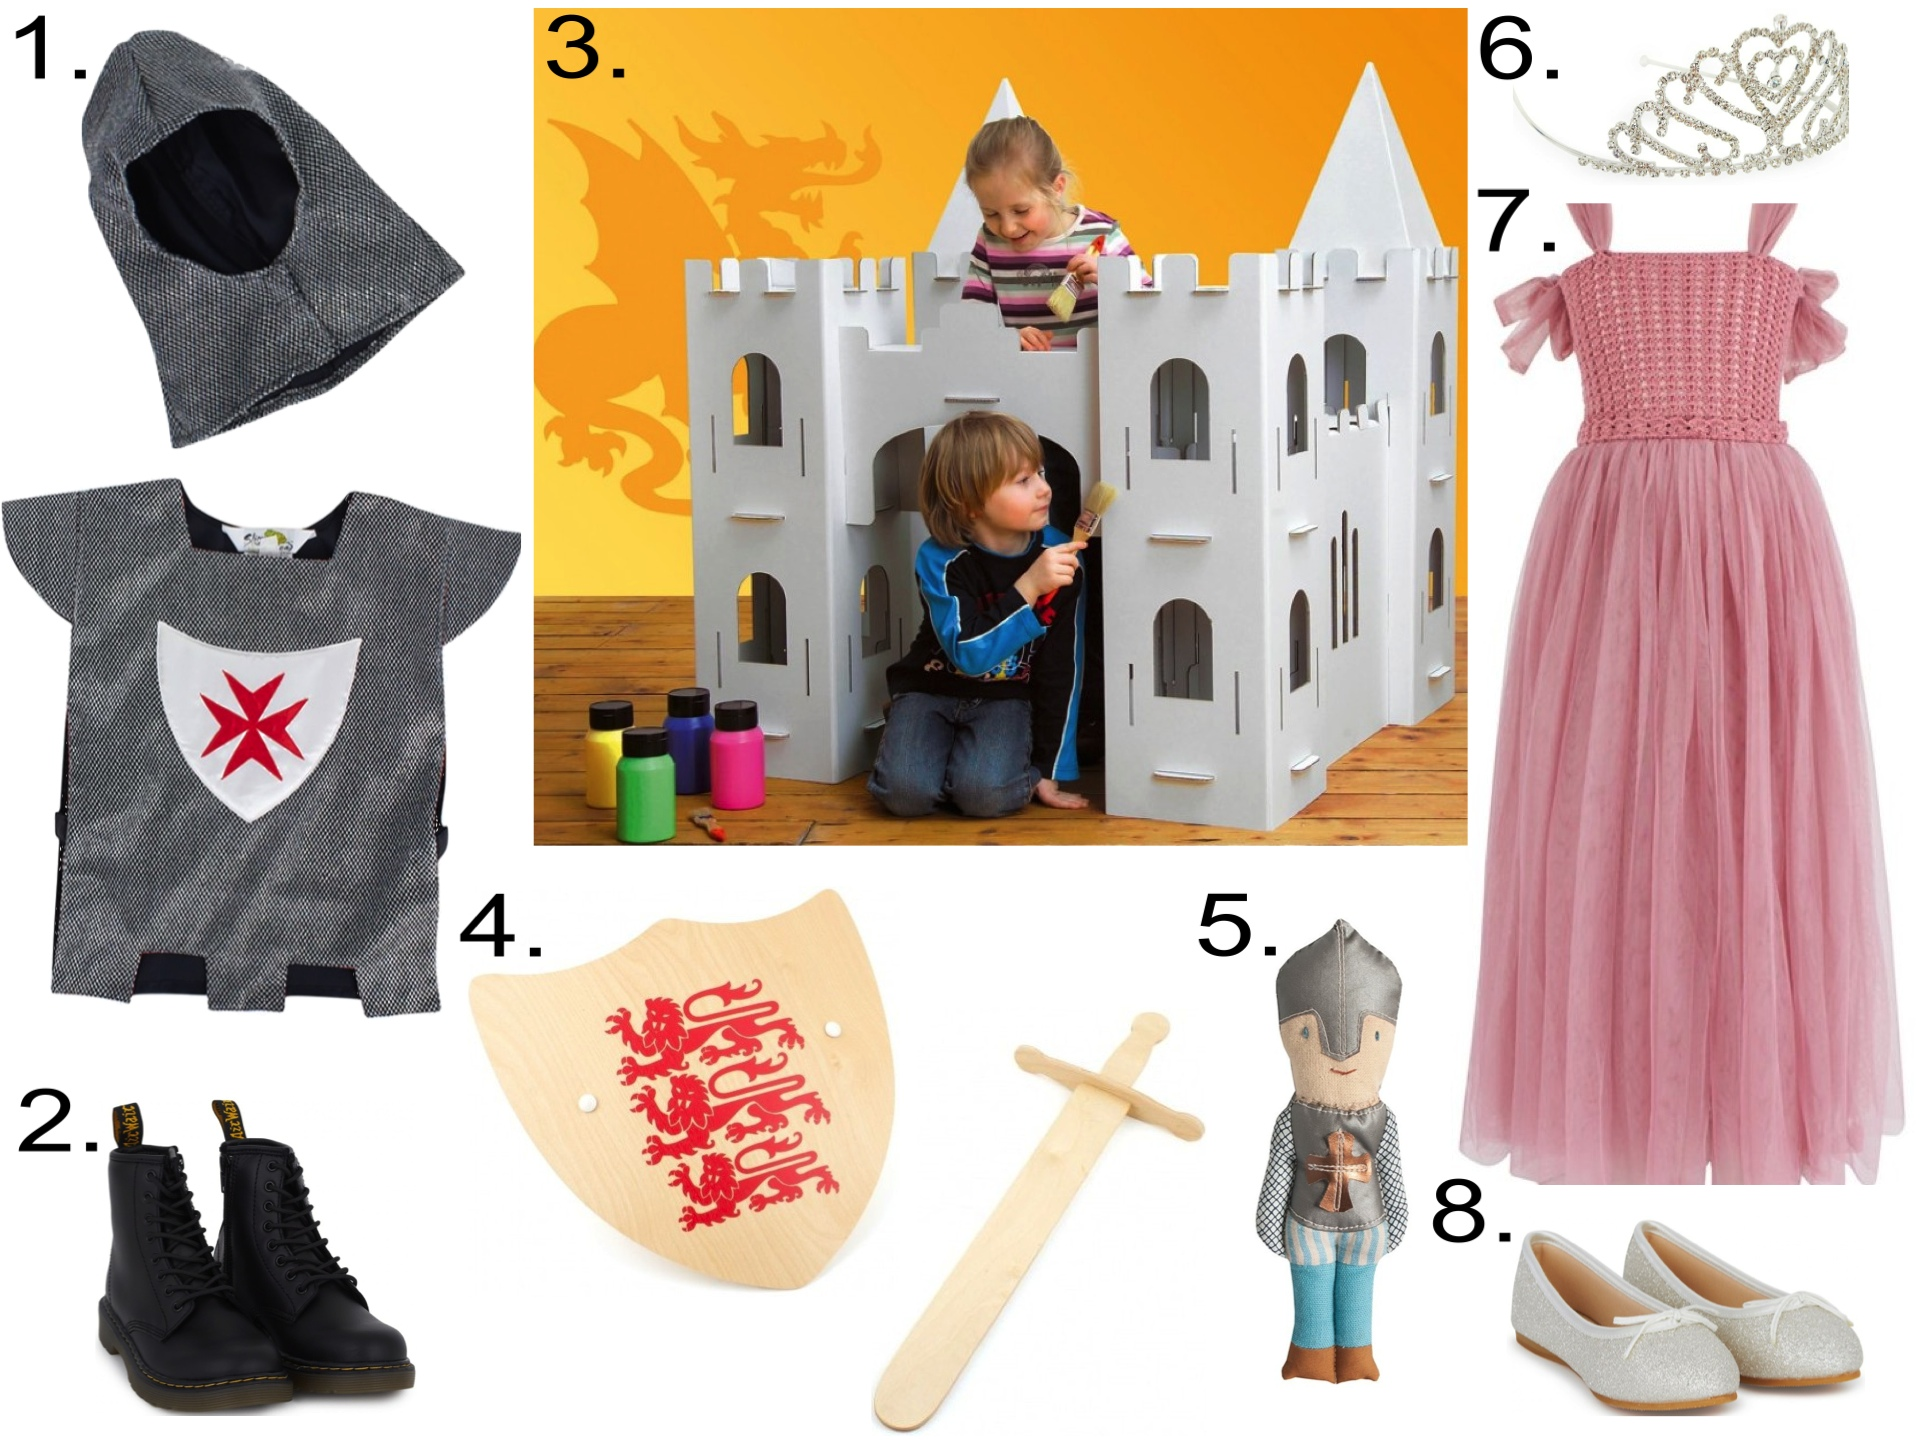 Fit for your little Knight or little Princess from    AlexandAlexa  1.  Lucy Locket Warrior Knight Tabbard  2.  Dr Martens Black Core Zip Shoes  3. Calafant Cardboard Calacastle  4.  Skipper Wooden Three Lions Shield And Sword Set  5.  Maileg Knight Rattle  6.  Lucy Locket Silver Tiara   7.  Numero 74 Scarlett Princess Dress  8.  Rainbow Club Hessy Glitter Shoes